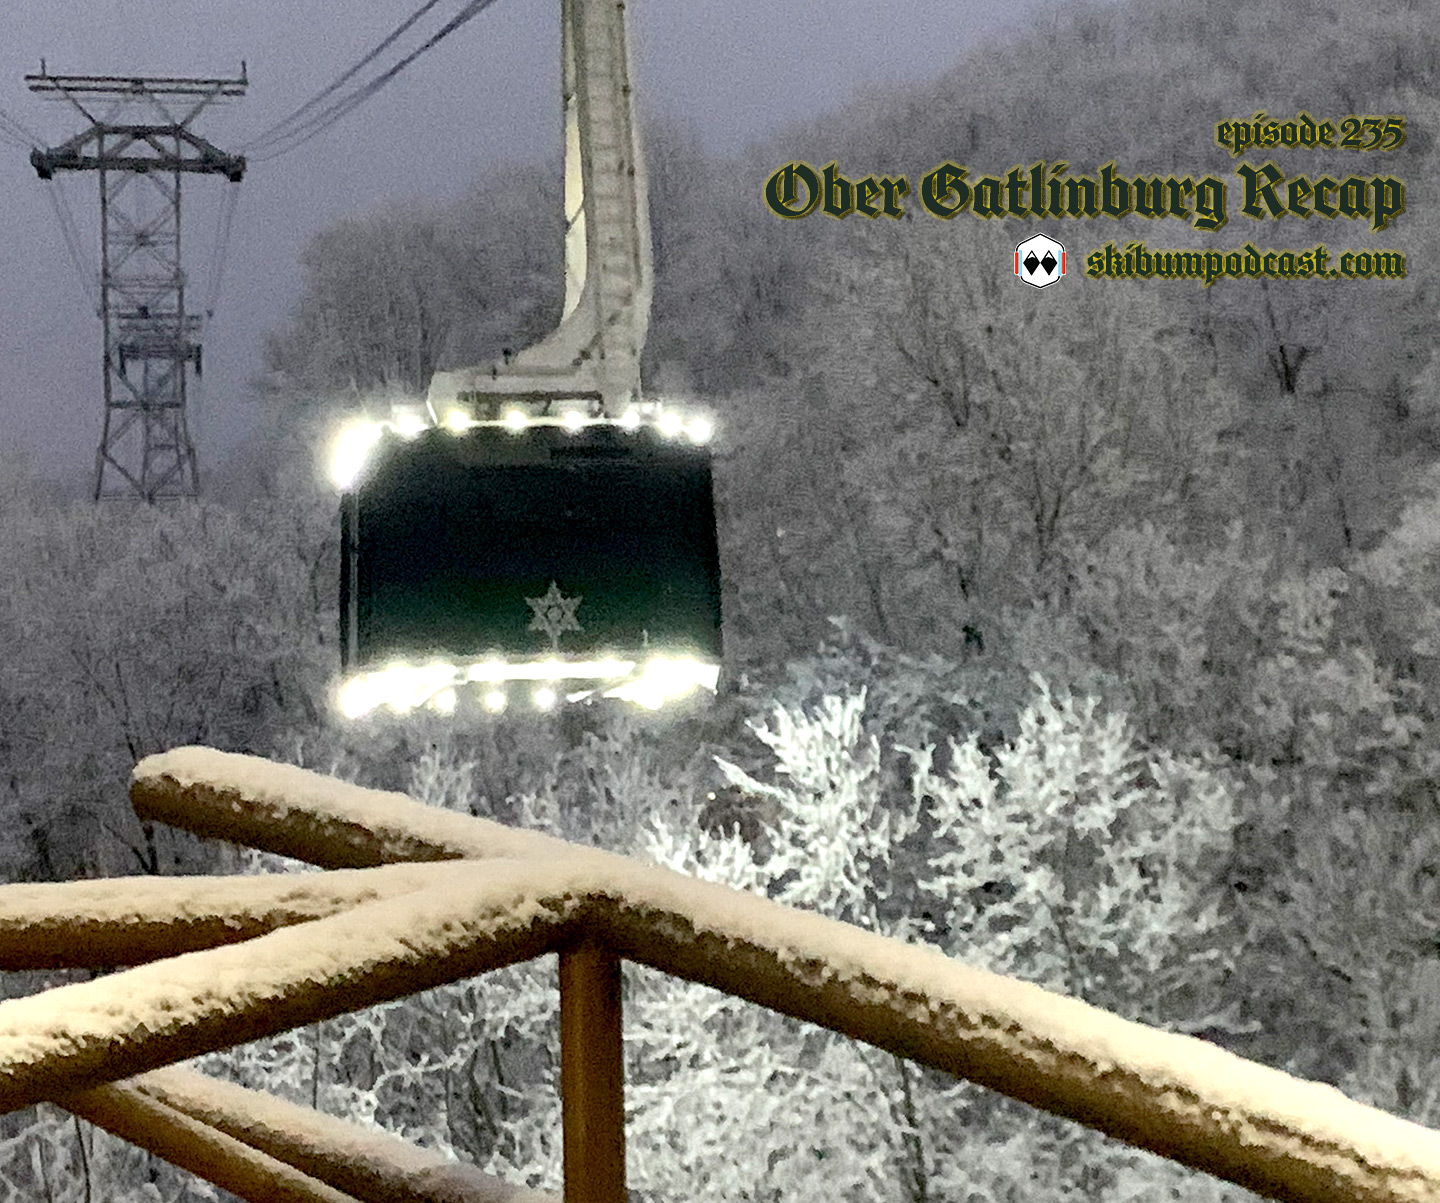 Podcast #235 – Ober Gatlinburg Recap